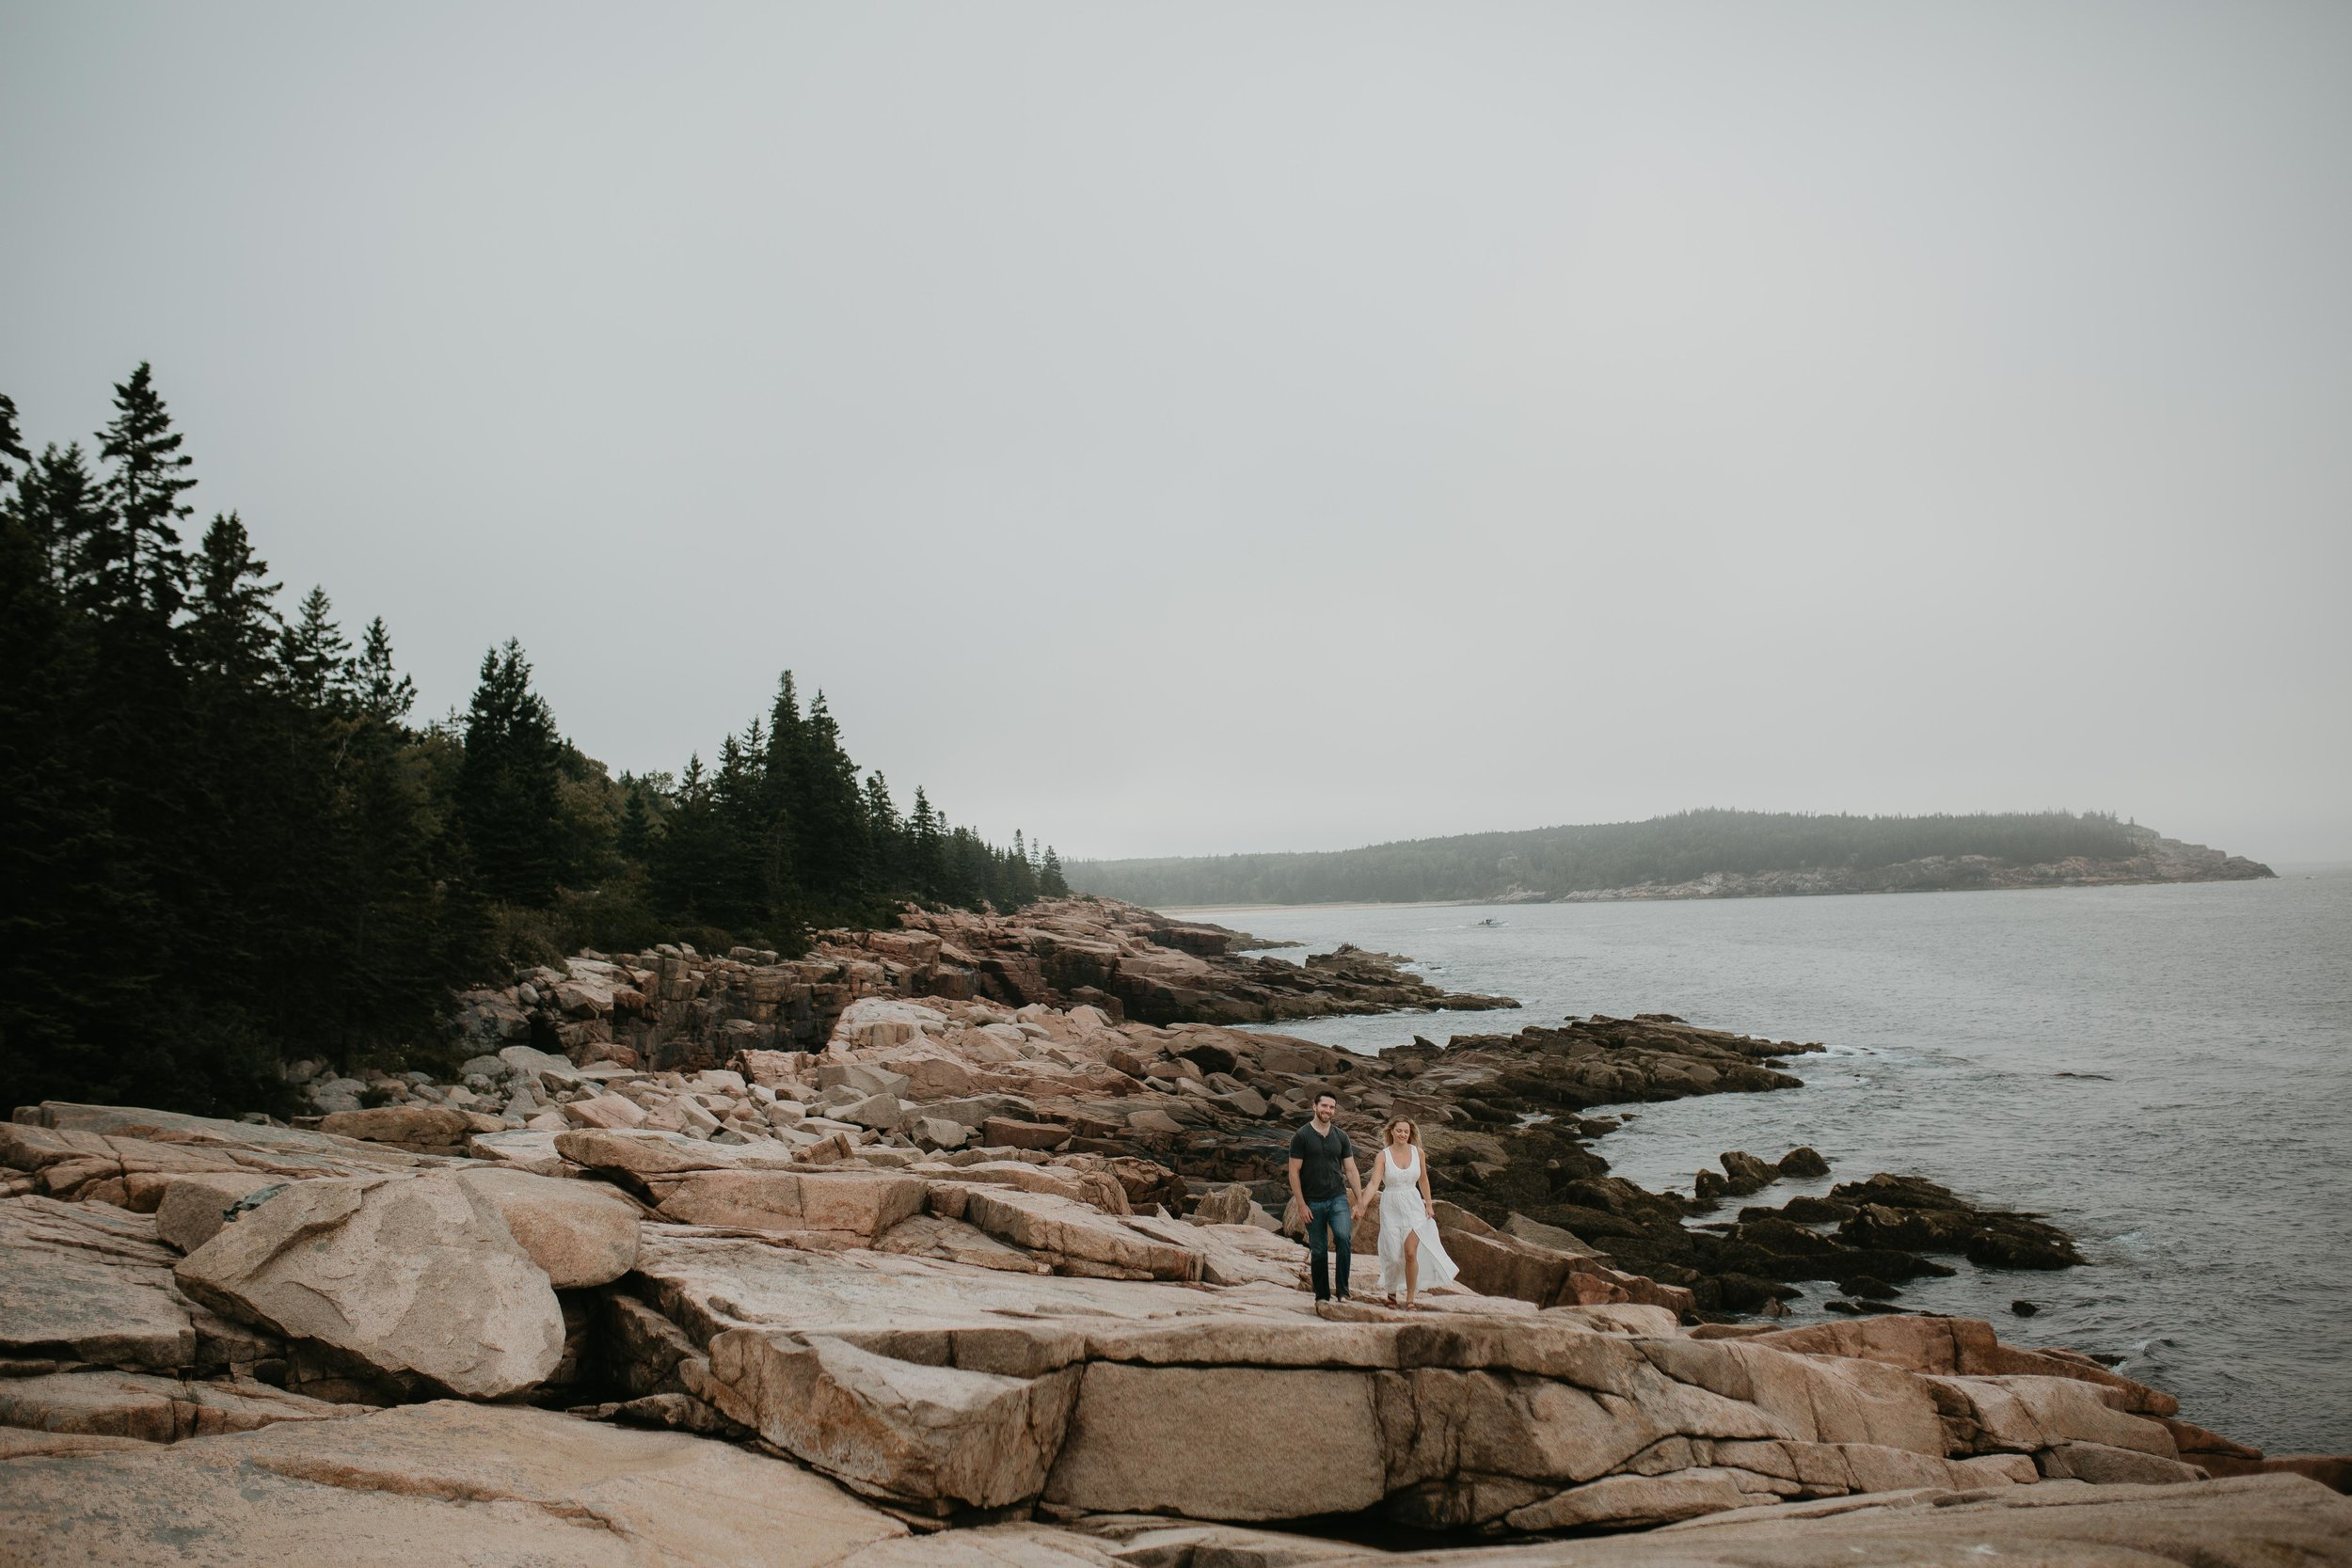 nicole-daacke-photography-acadia-national-park-adventurous-engagement-session-photos-otter-cliffs-forests-coastline-sand-beach-adventure-session-bar-harbor-mt-desert-island-elopement-fall-bass-harbor-lighthouse-wedding-maine-landscape-photographer-31.jpg